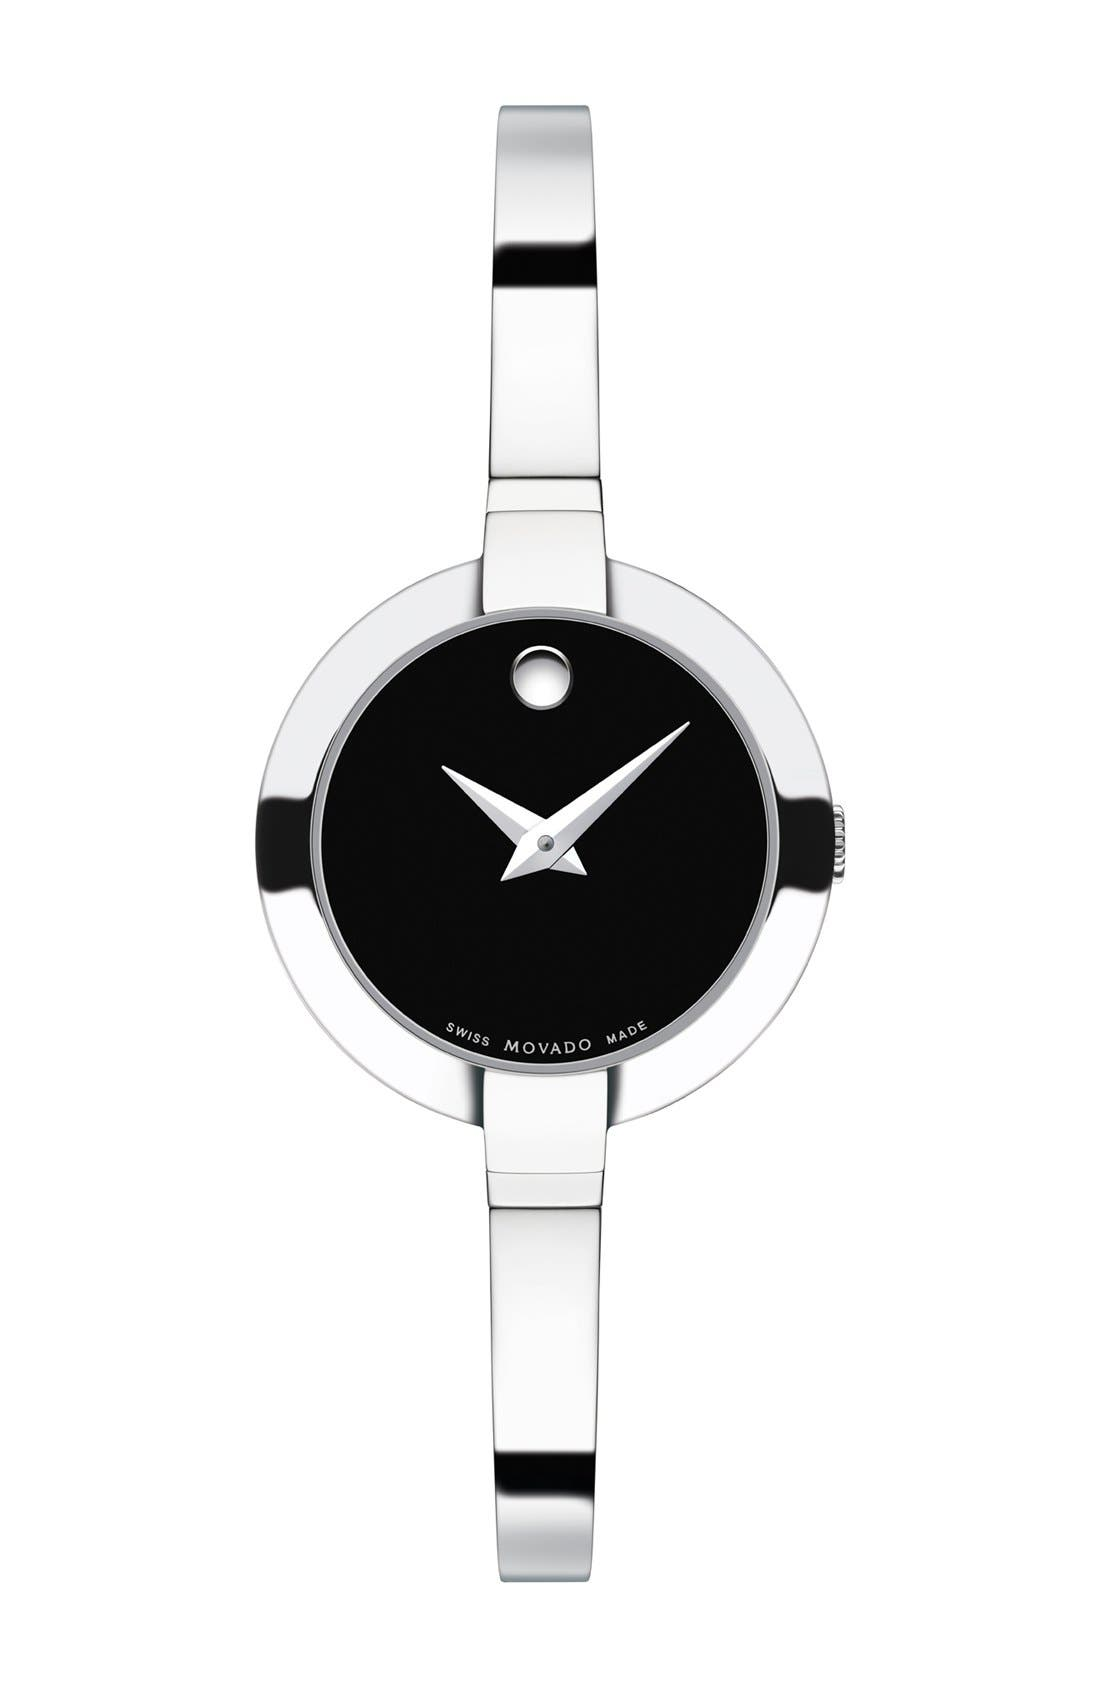 Alternate Image 1 Selected - Movado 'Bela' Bangle Watch, 25mm (Regular Retail Price: $495.00)